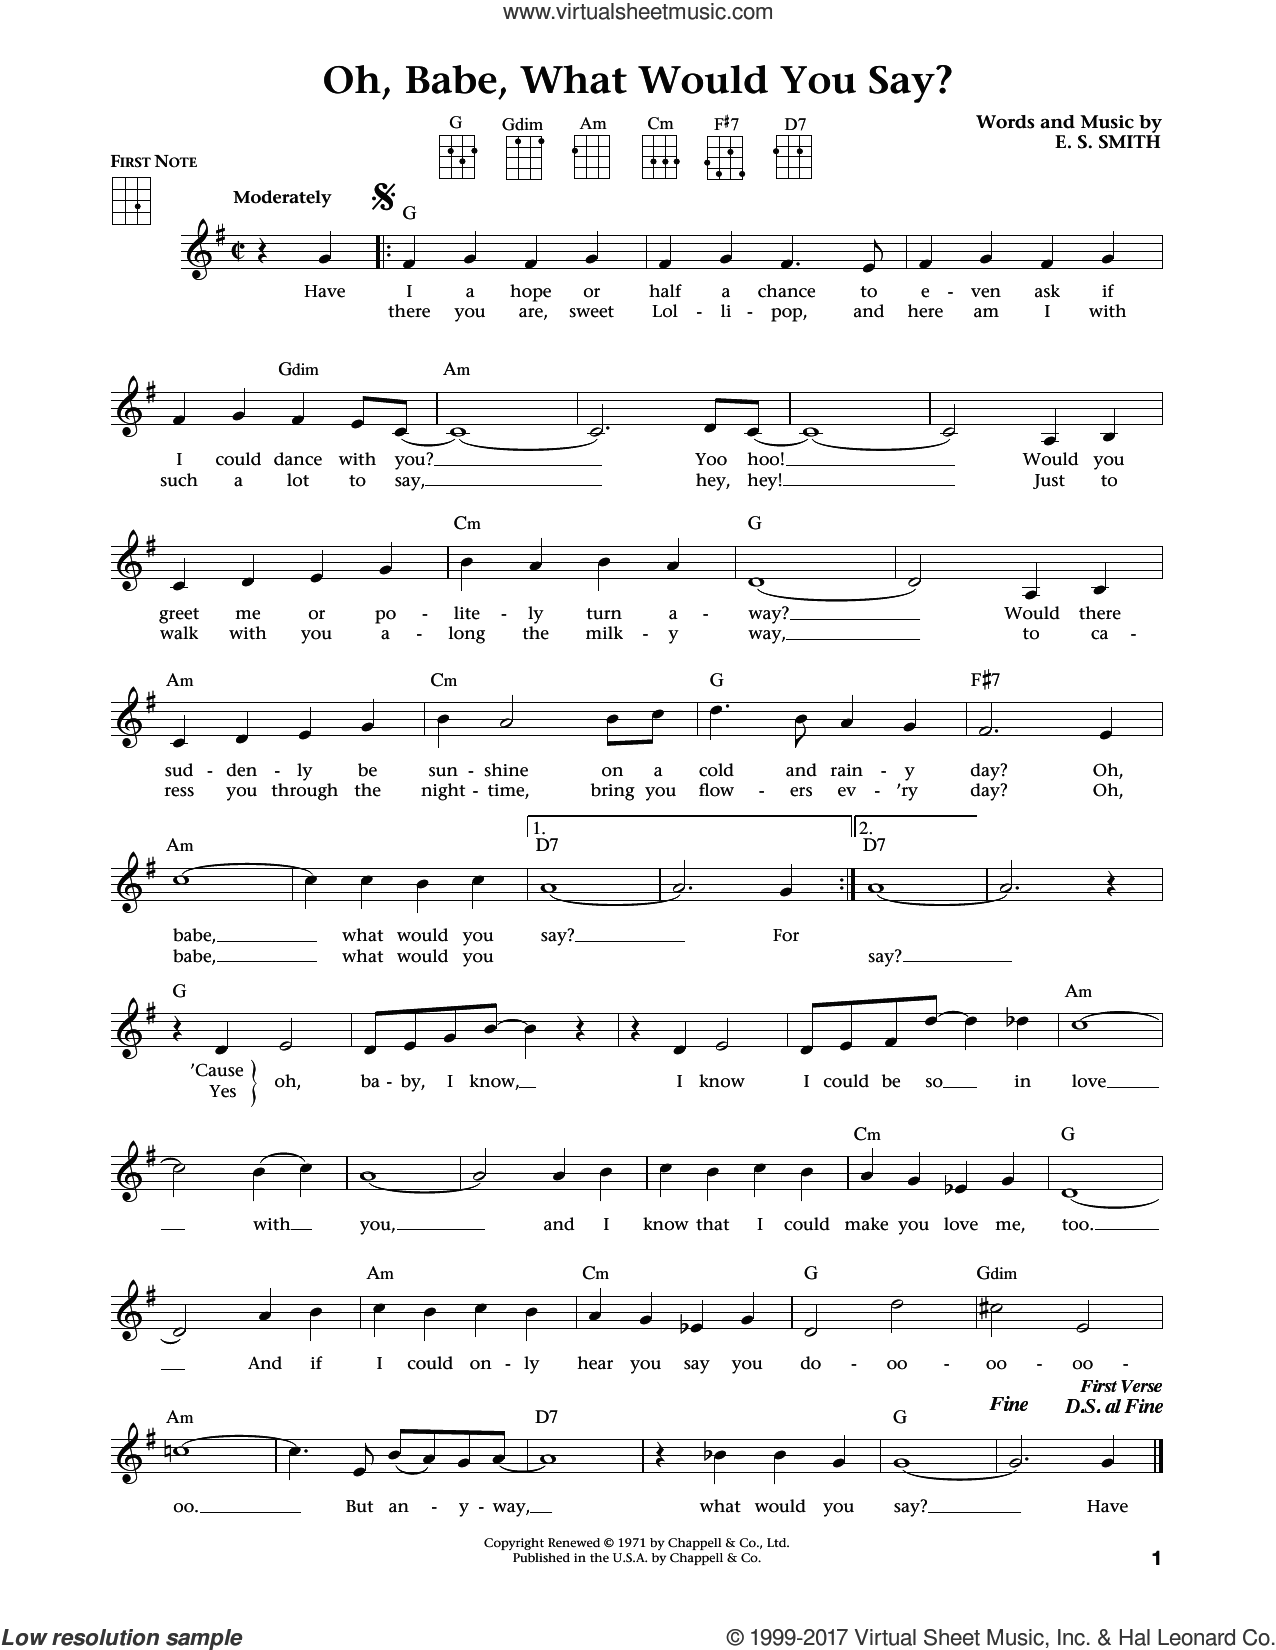 Oh, Babe, What Would You Say? sheet music for ukulele by Hurricane Smith, intermediate. Score Image Preview.